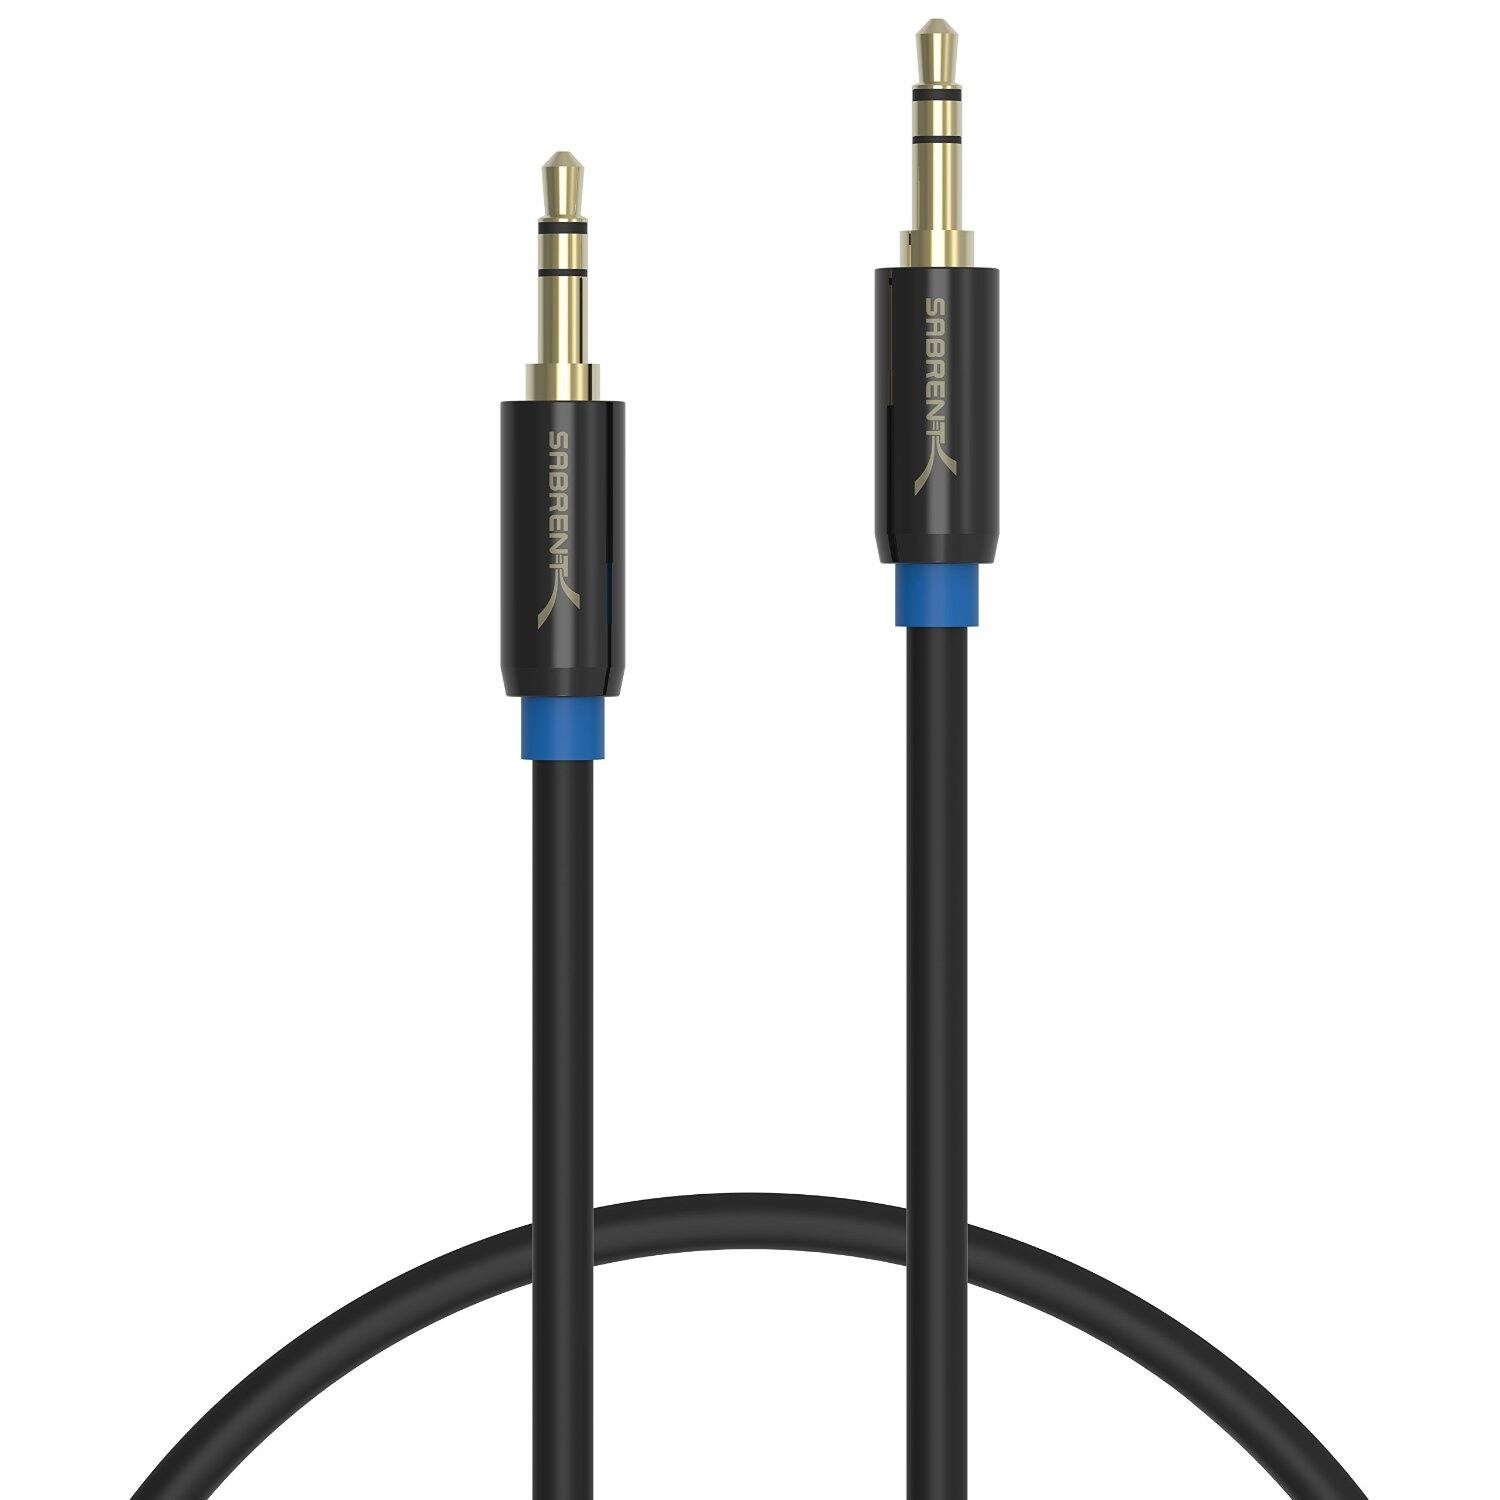 3ft Sabrent 3.5mm to 3.5mm Cable $2 @ Amazon